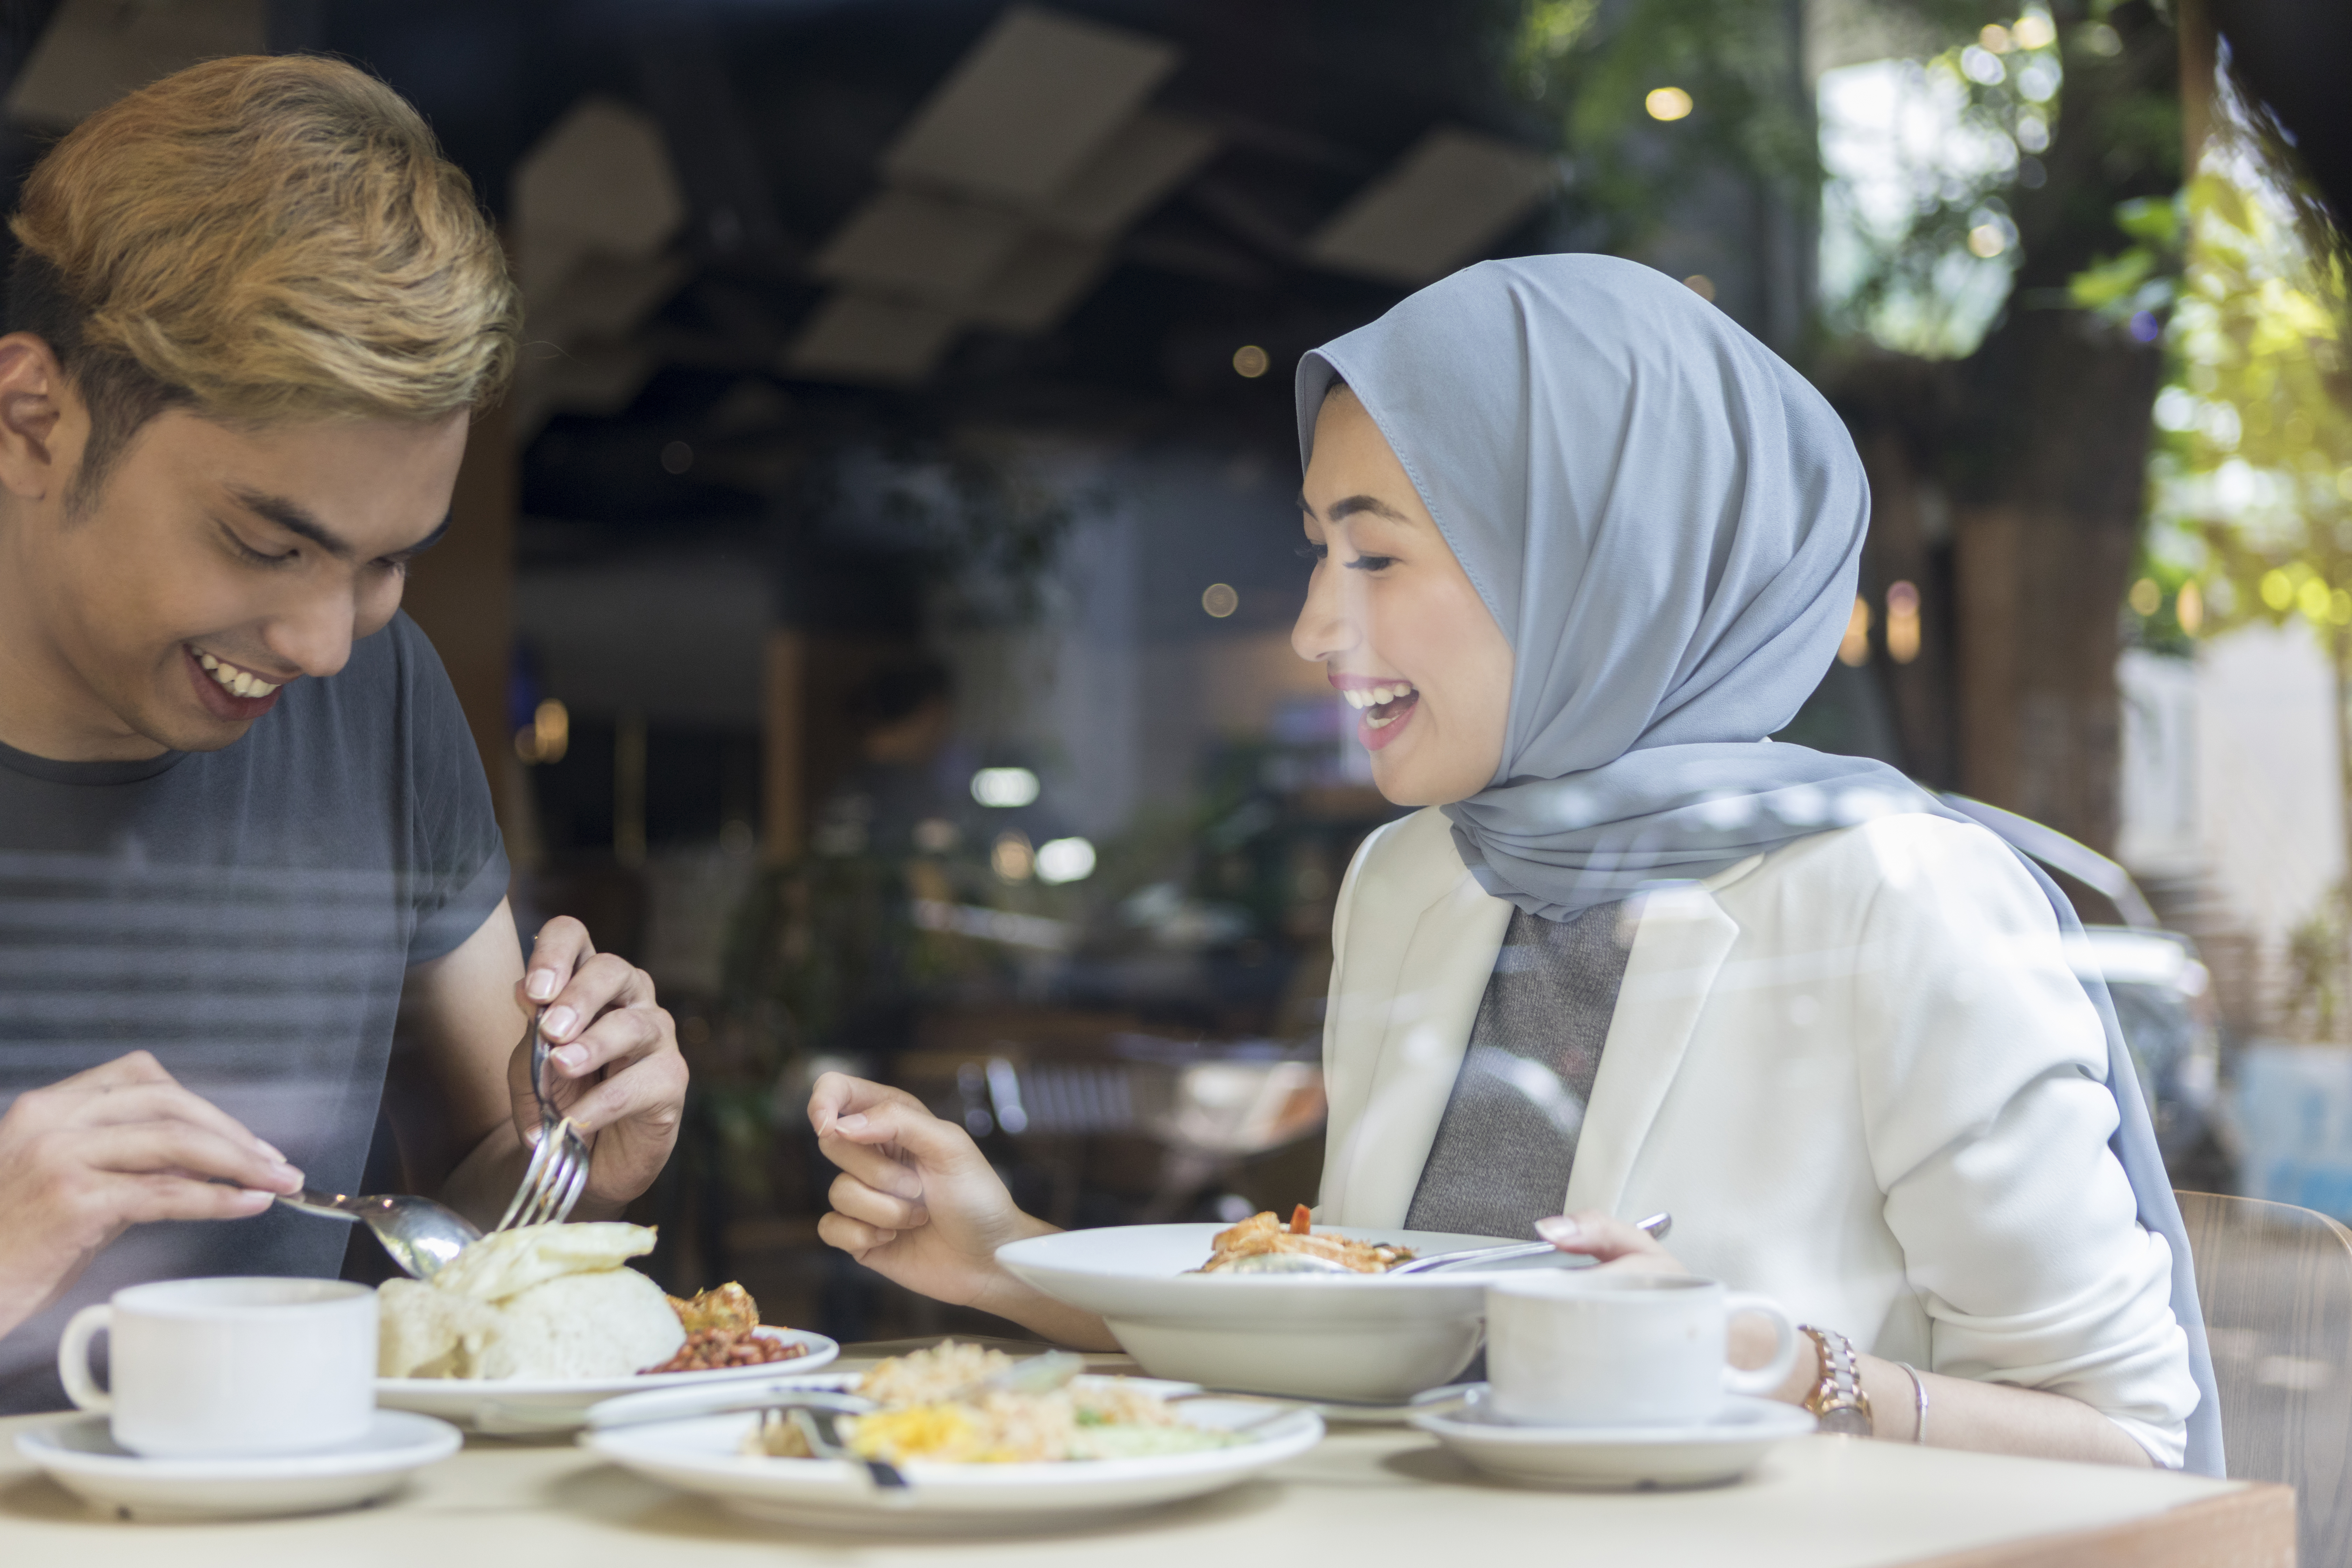 Muslim dating practices today